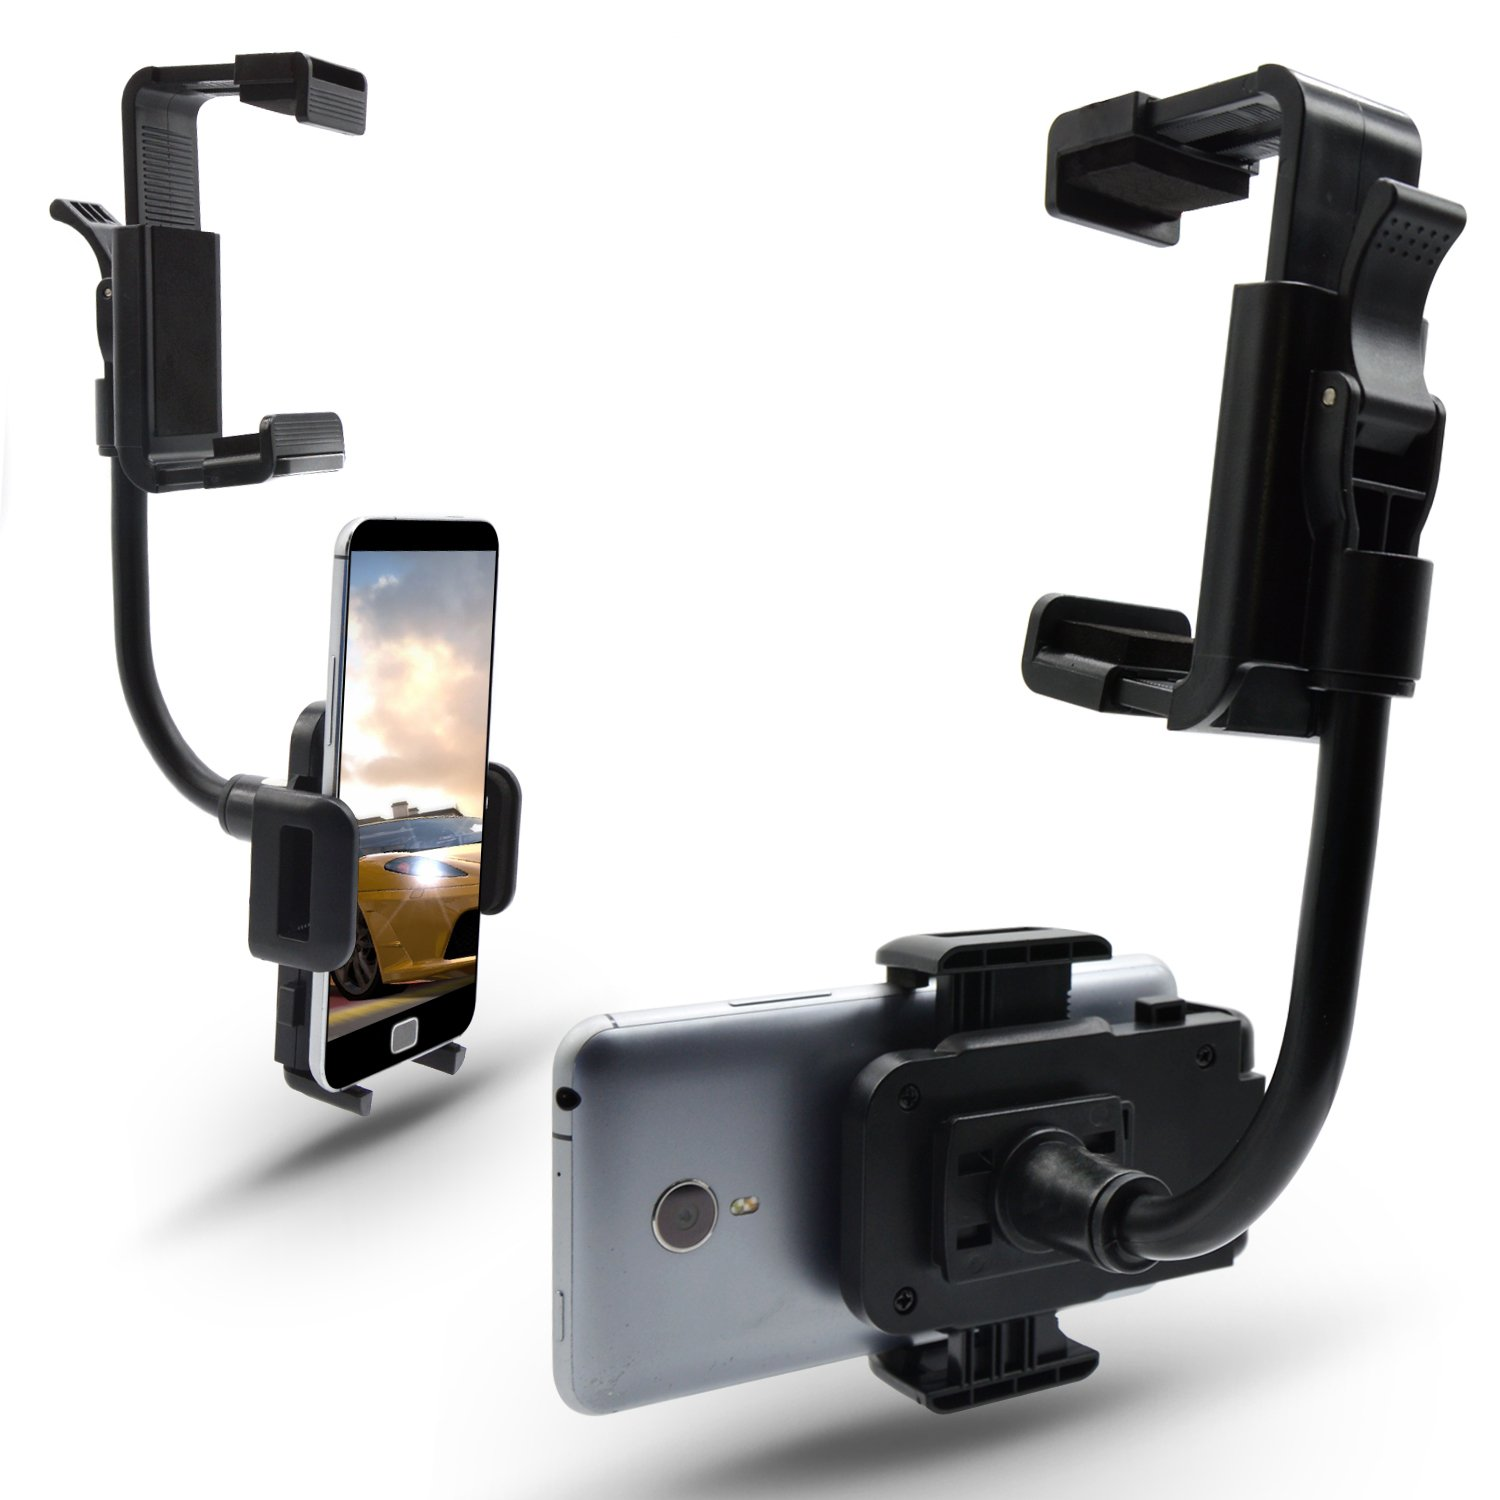 Elemart Universal Smartphone Holders Car Rear View Mirror Mount Holder Smartphone Bracket For iPhone 6s//6splus//6//6plus//5//5S Samsung Galaxy S6//S5//S4//S3 Note 4//3//2 GPS and More